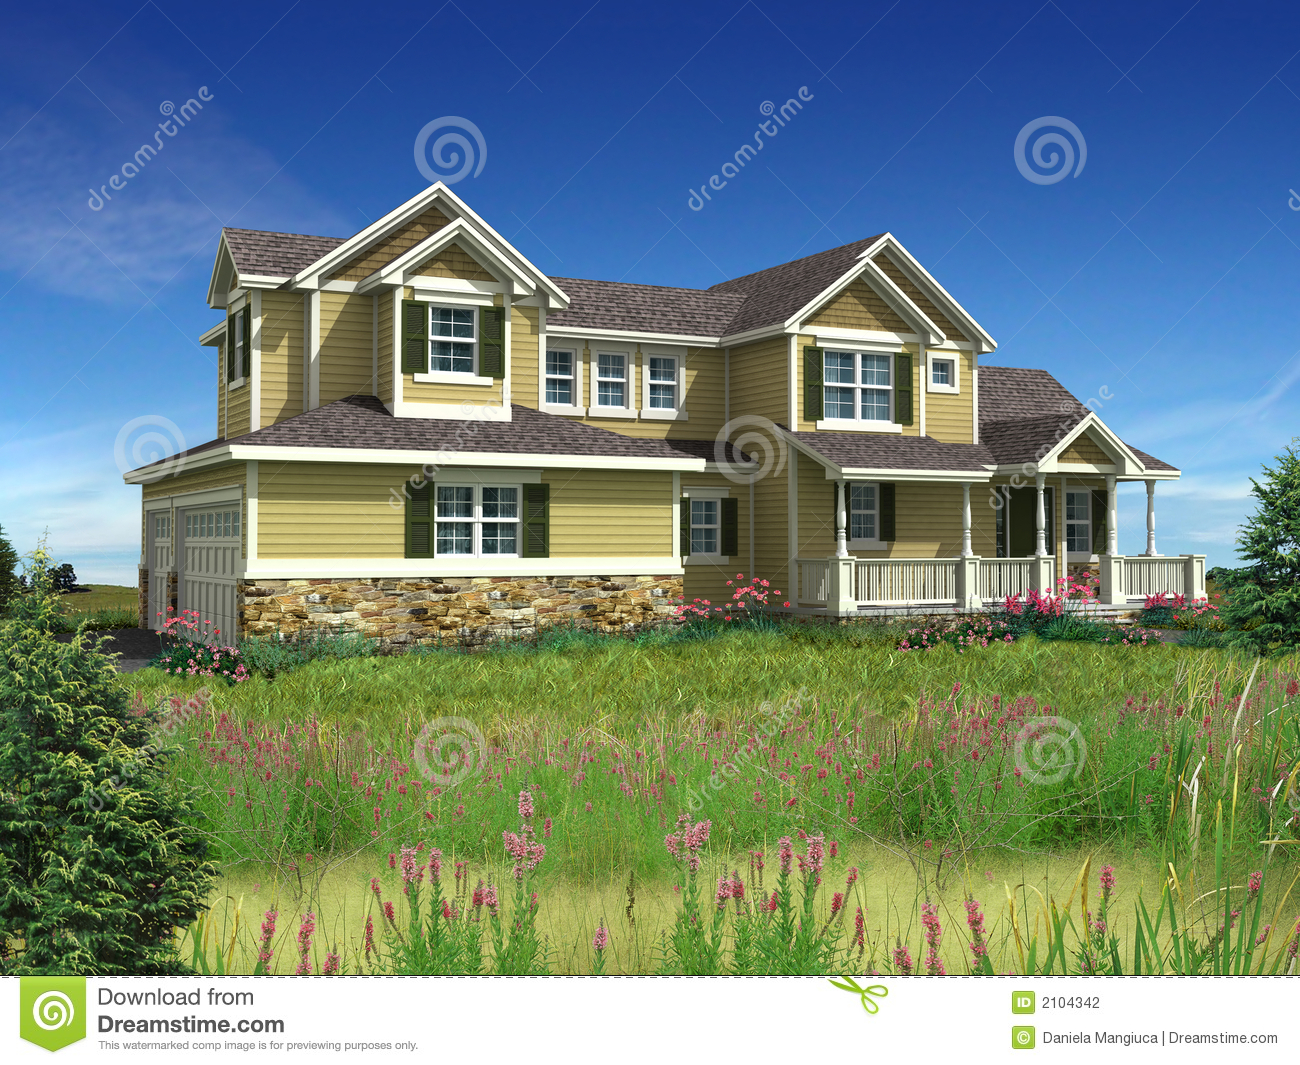 3d Model Of Two Level House Stock Photography Image 2104342